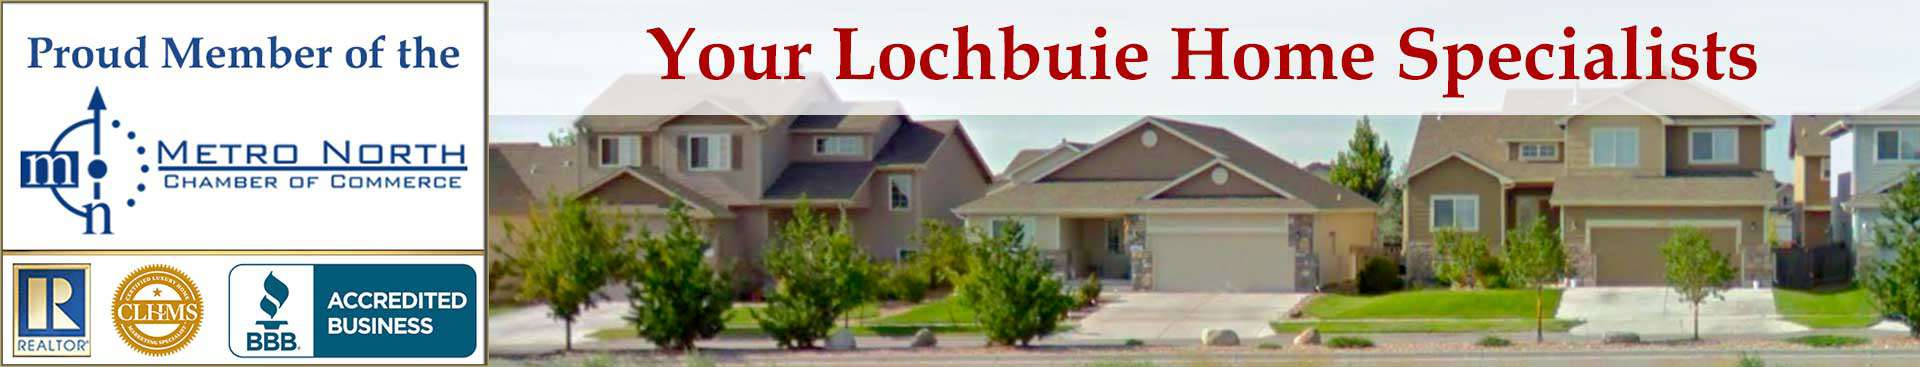 Lochbuie CO Accreditations Banner